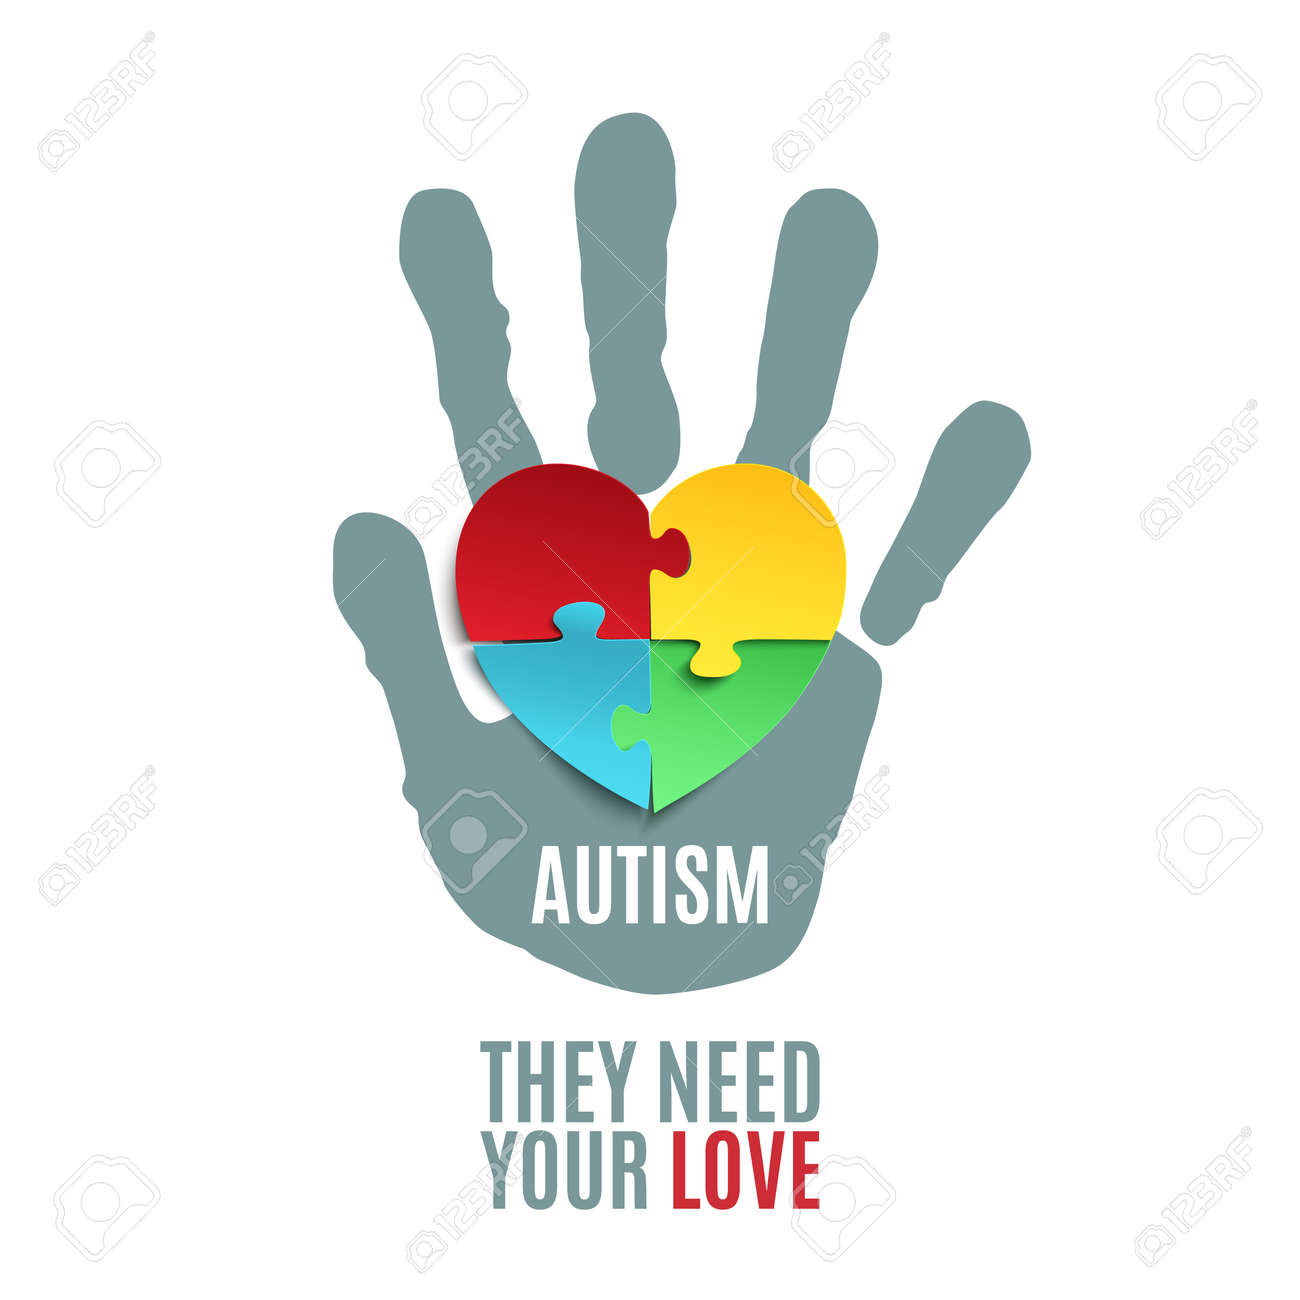 hight resolution of they need your love autism awareness poster or brochure template jigsaw puzzle pieces in